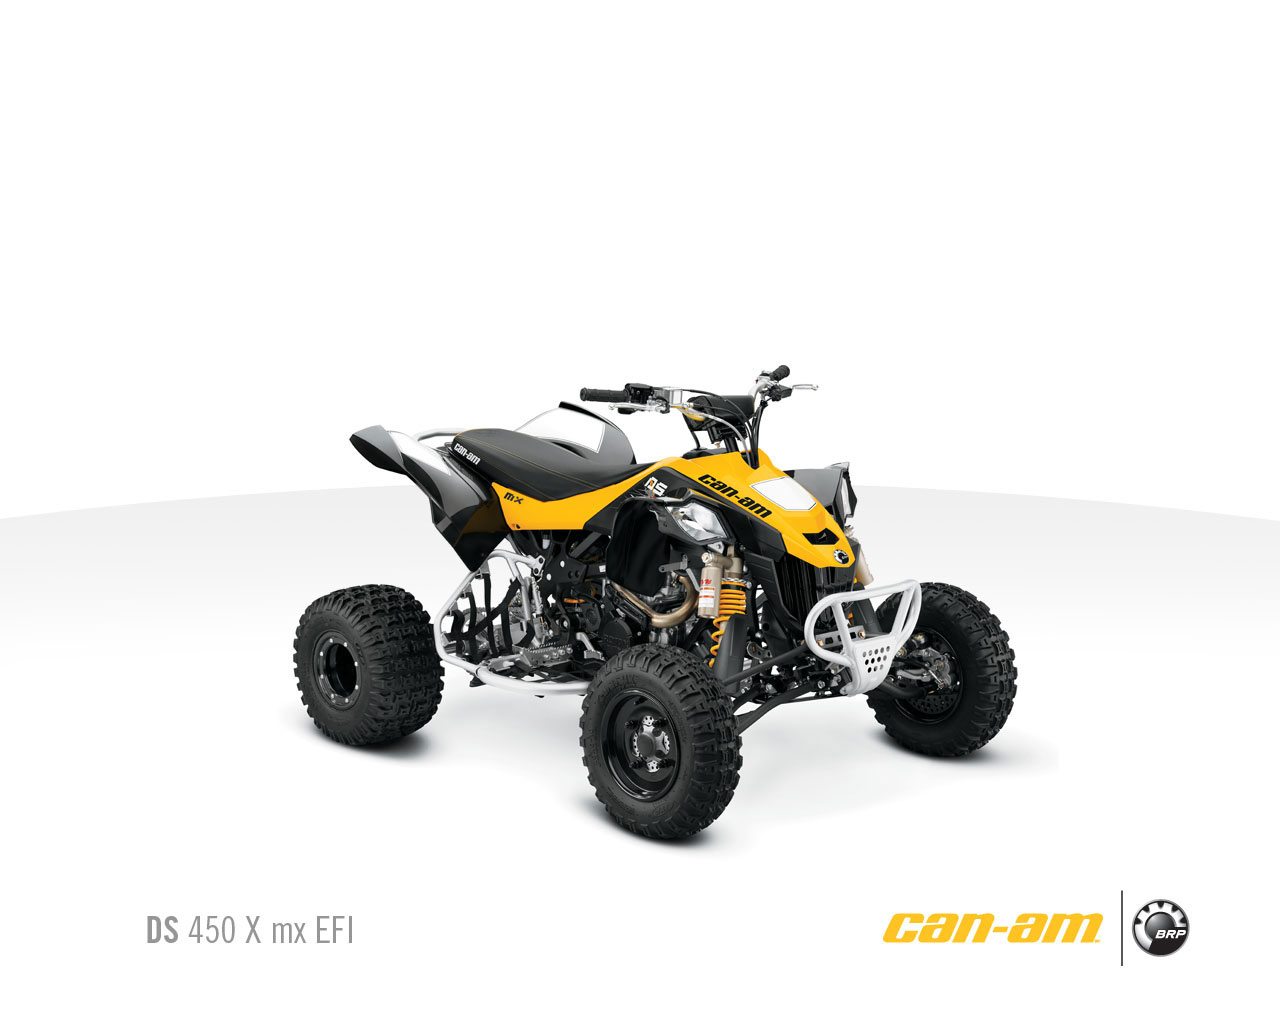 hight resolution of can am ds 250 wiring diagram simple wiring schema ds 250 nerf bars ds 250 wiring diagram